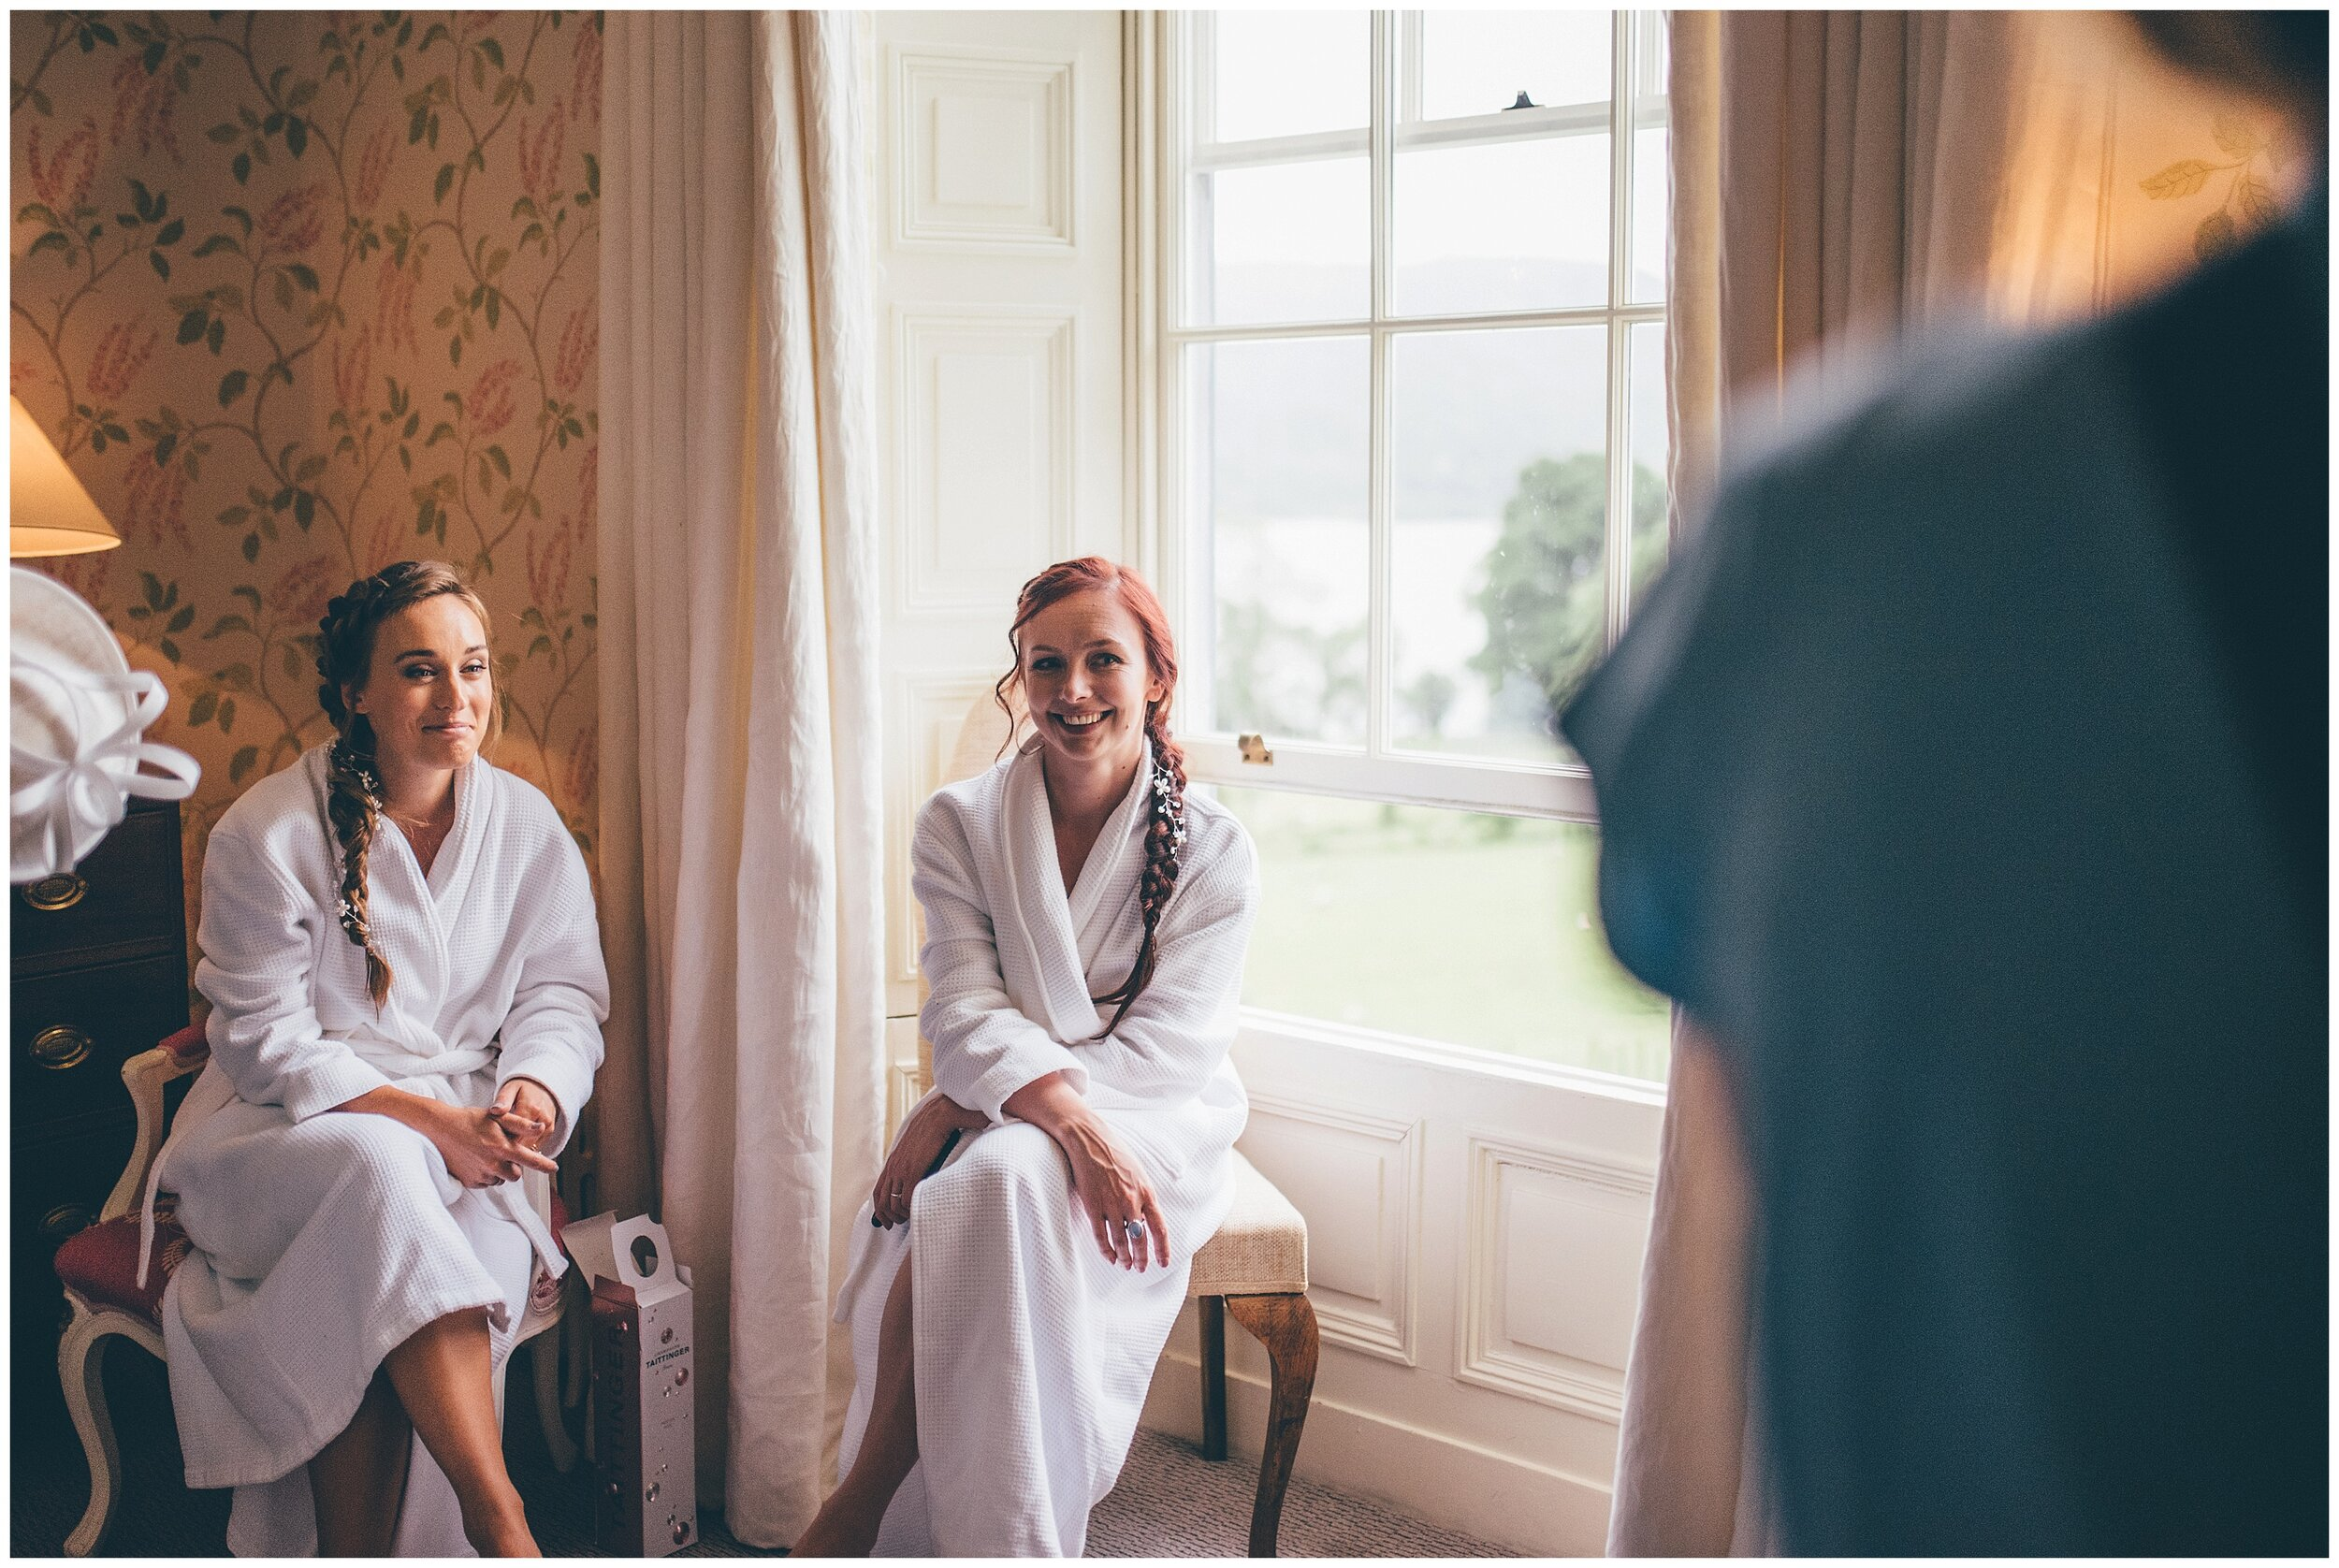 Beautiful bridesmaids enjoy the wedding morning at Silverholme Estate.